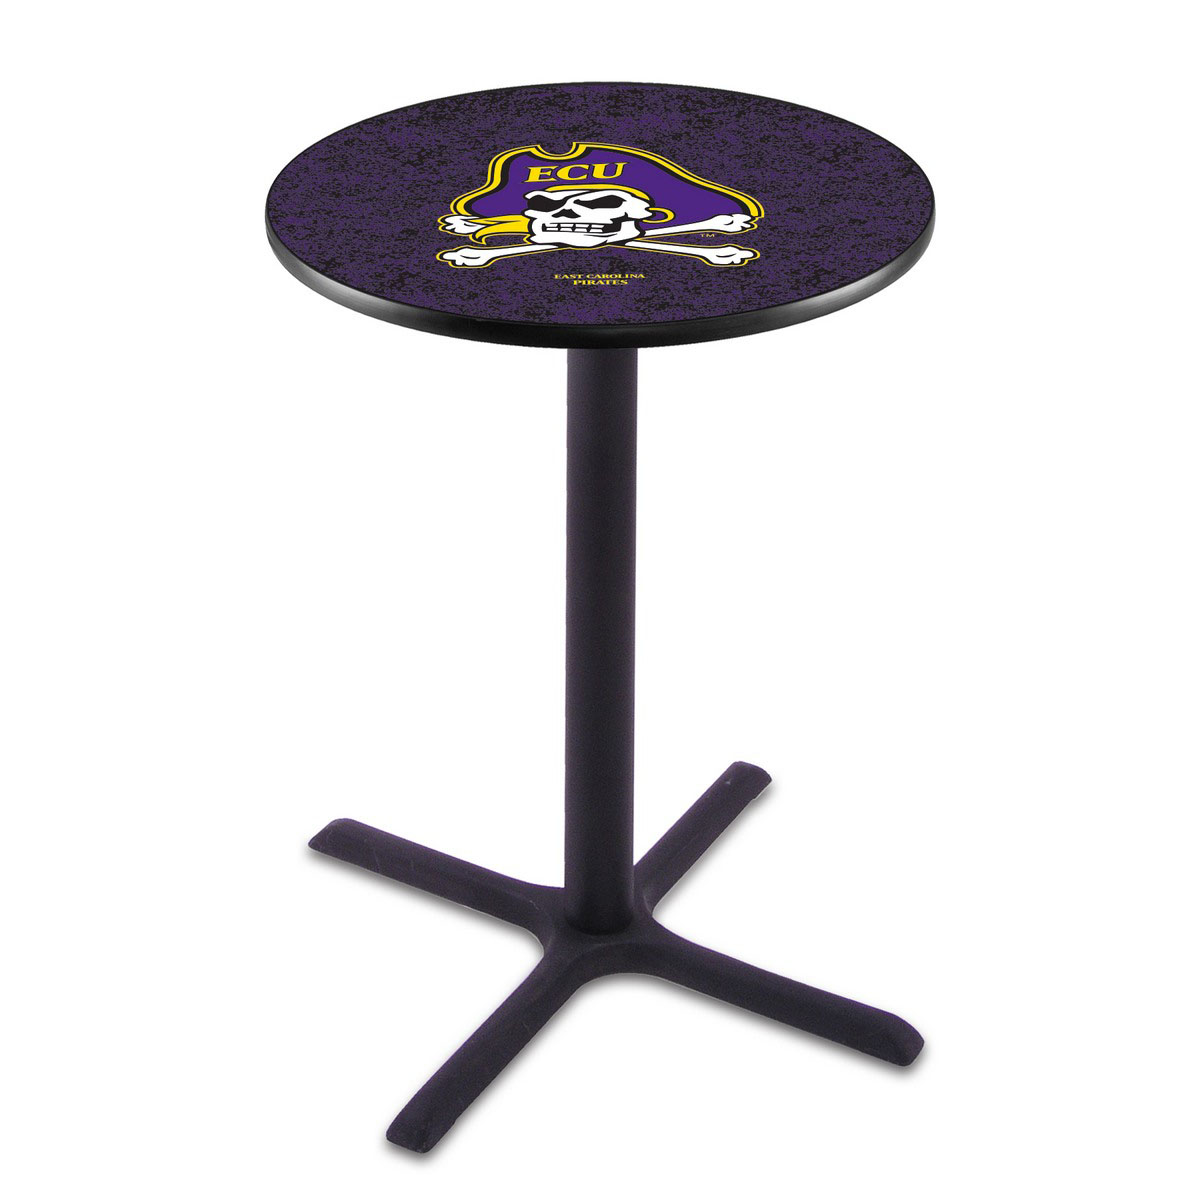 Superb-quality East Carolina Wrinkle Pub Table Product Photo